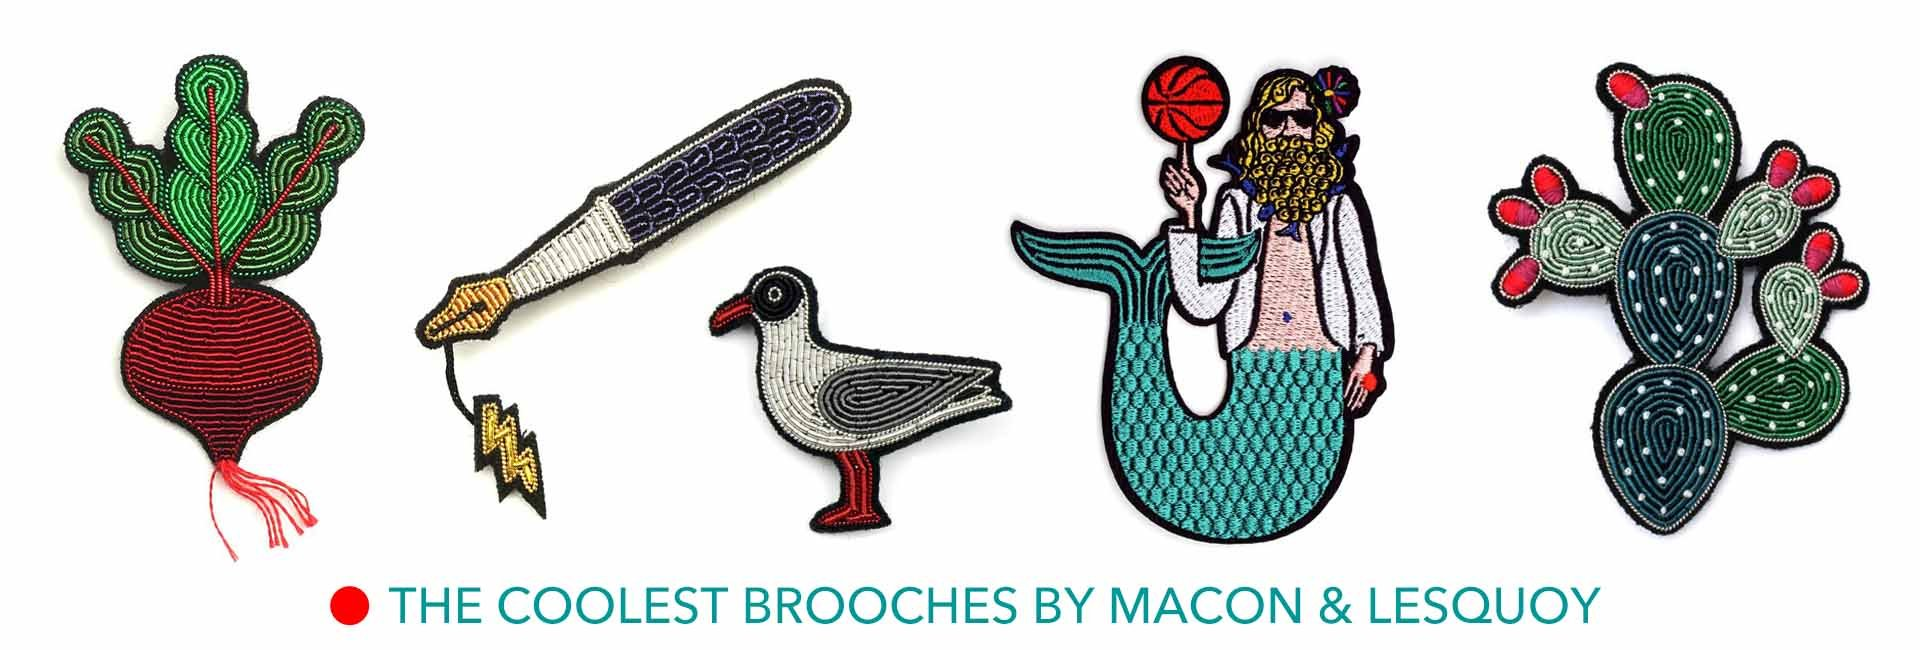 Macon & Lesquoy embroidered brooches at The Pippa & Ike Show